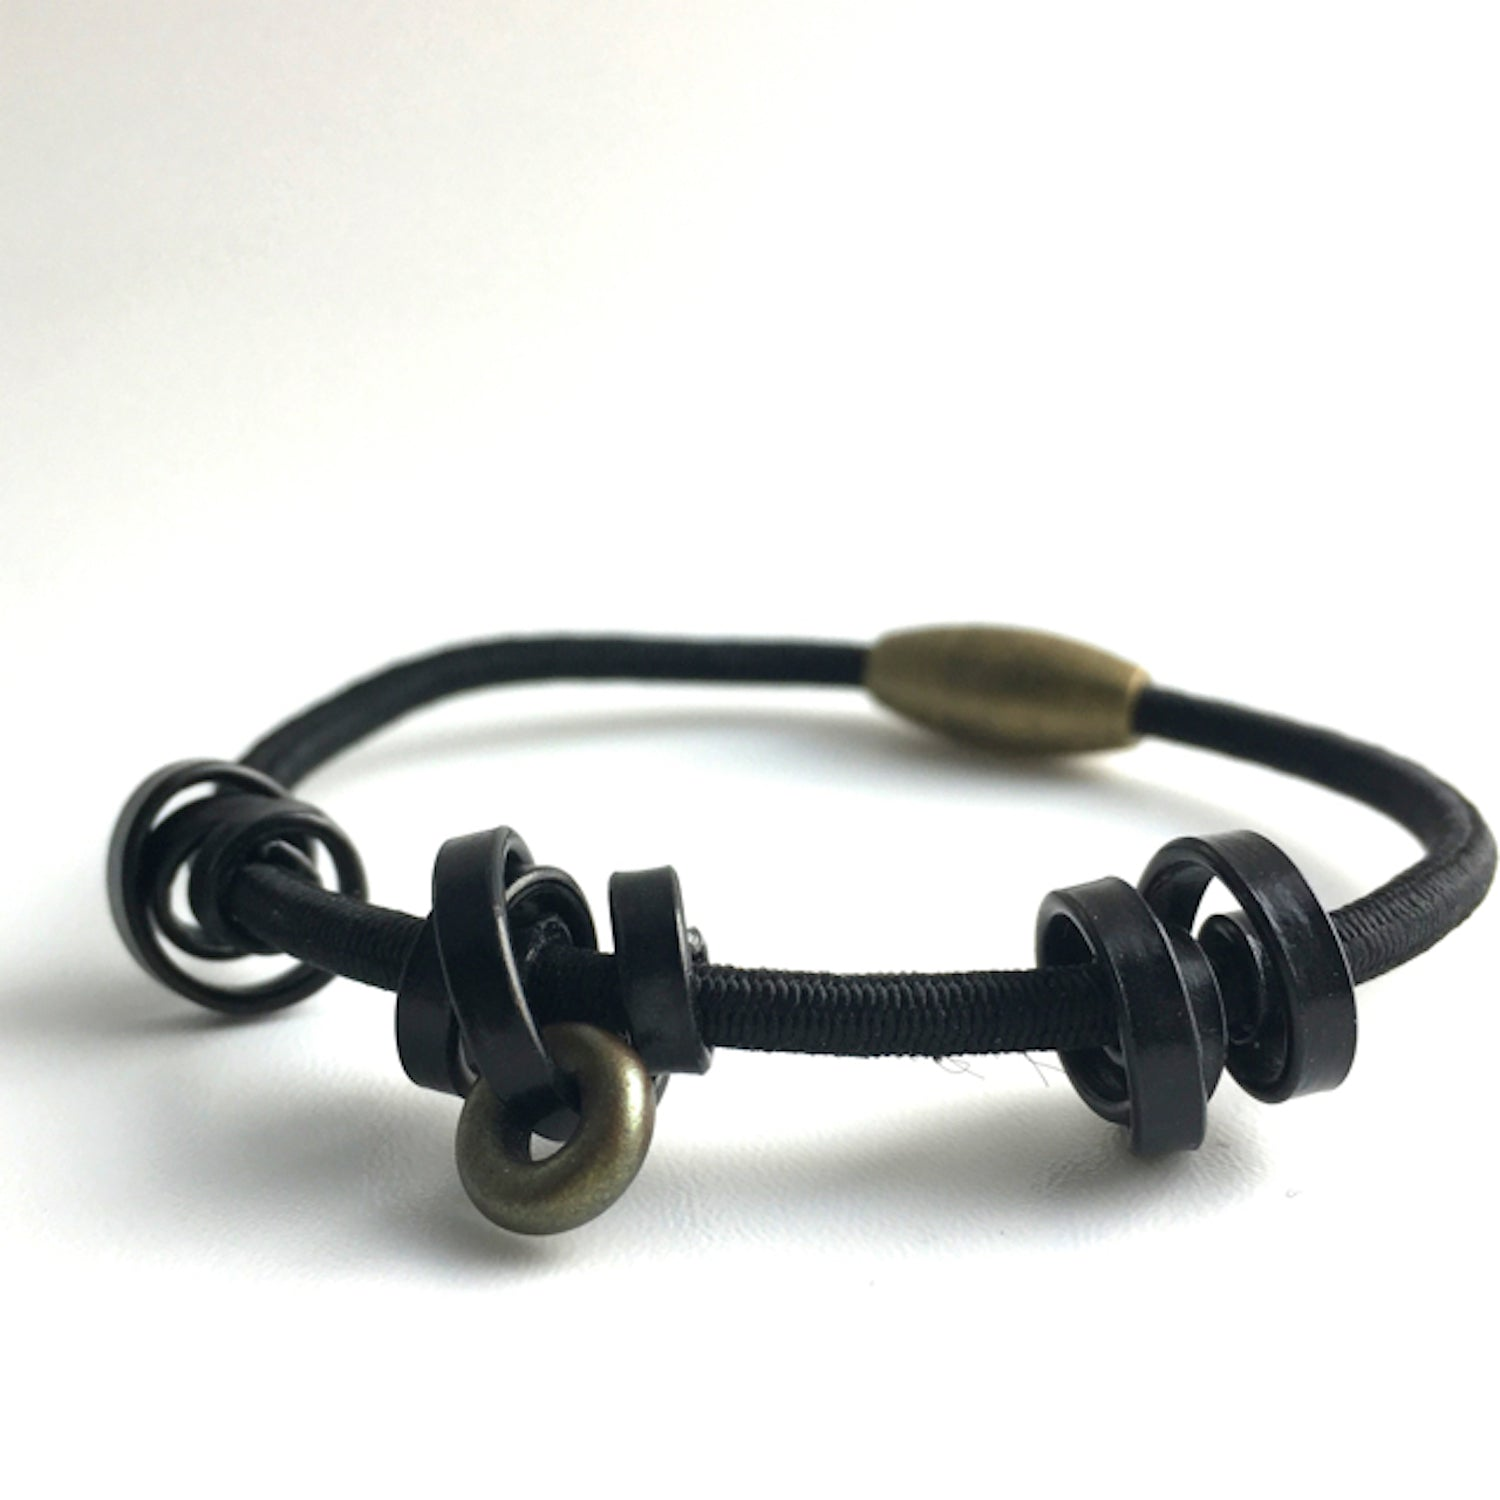 This is a Loopt bracelet on a fine cord and thin black coloured aluminum wire. All bracelets sport magnetic clasps.